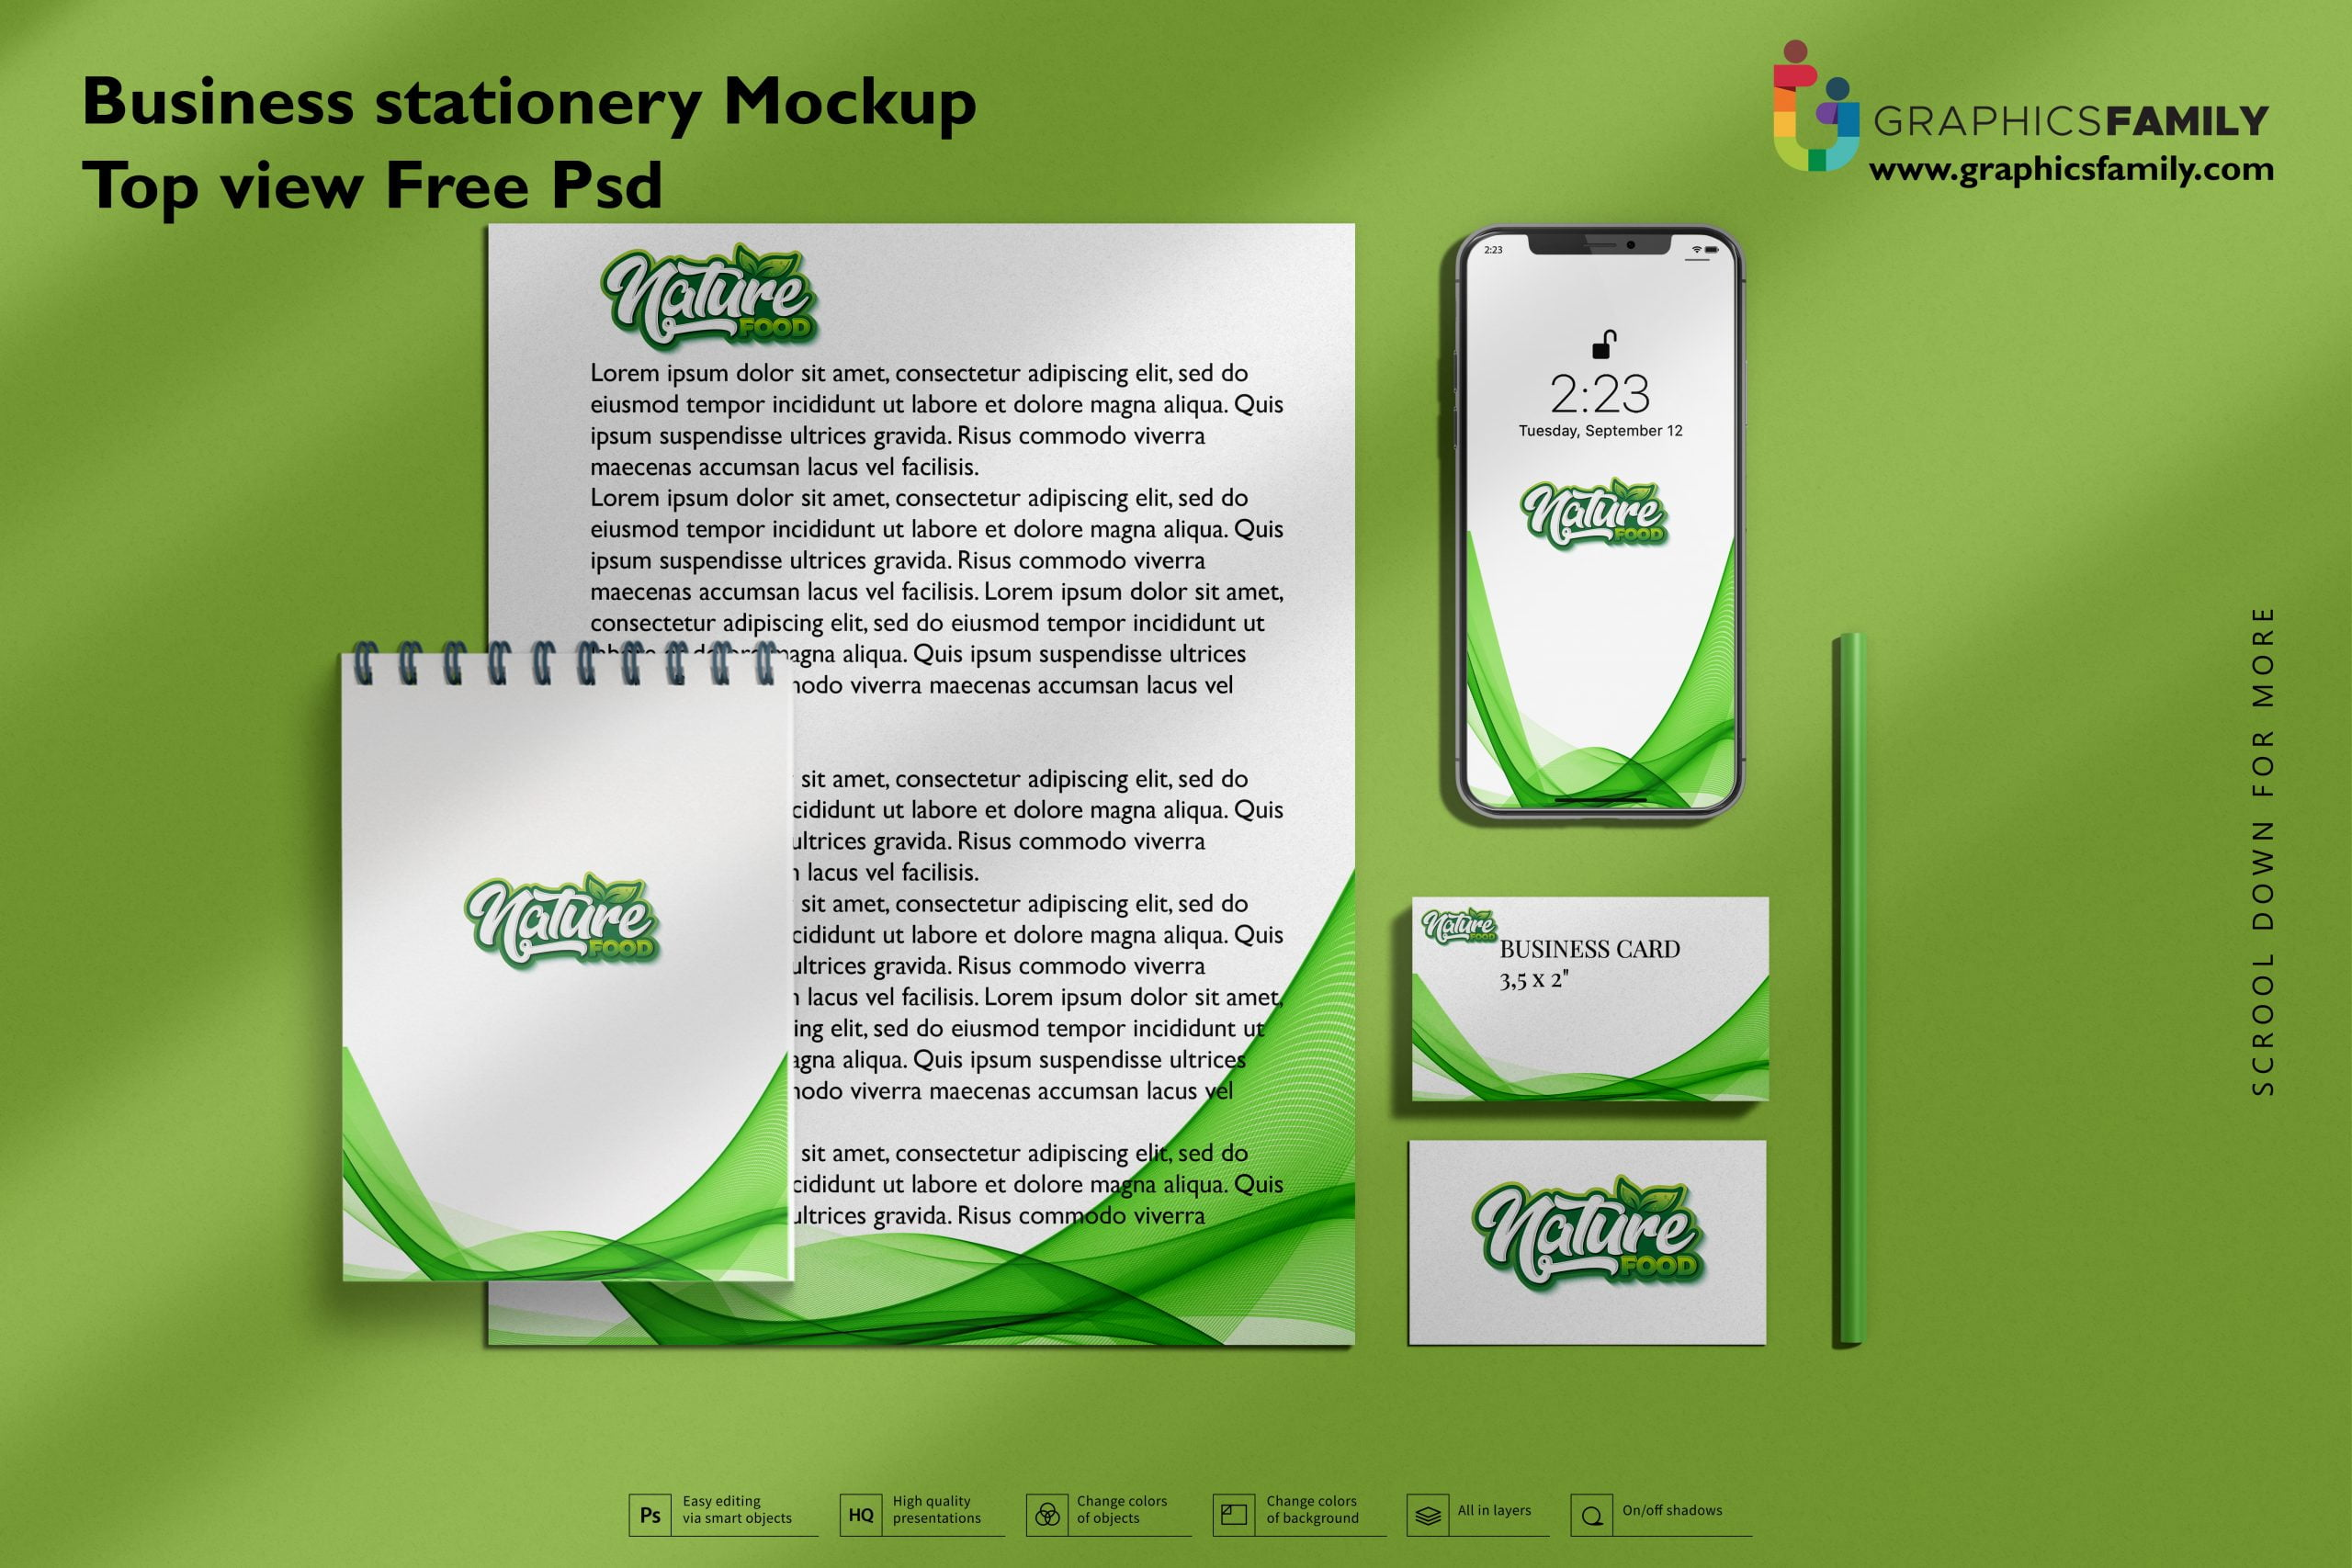 Download Business stationery mock-up top view Free Psd